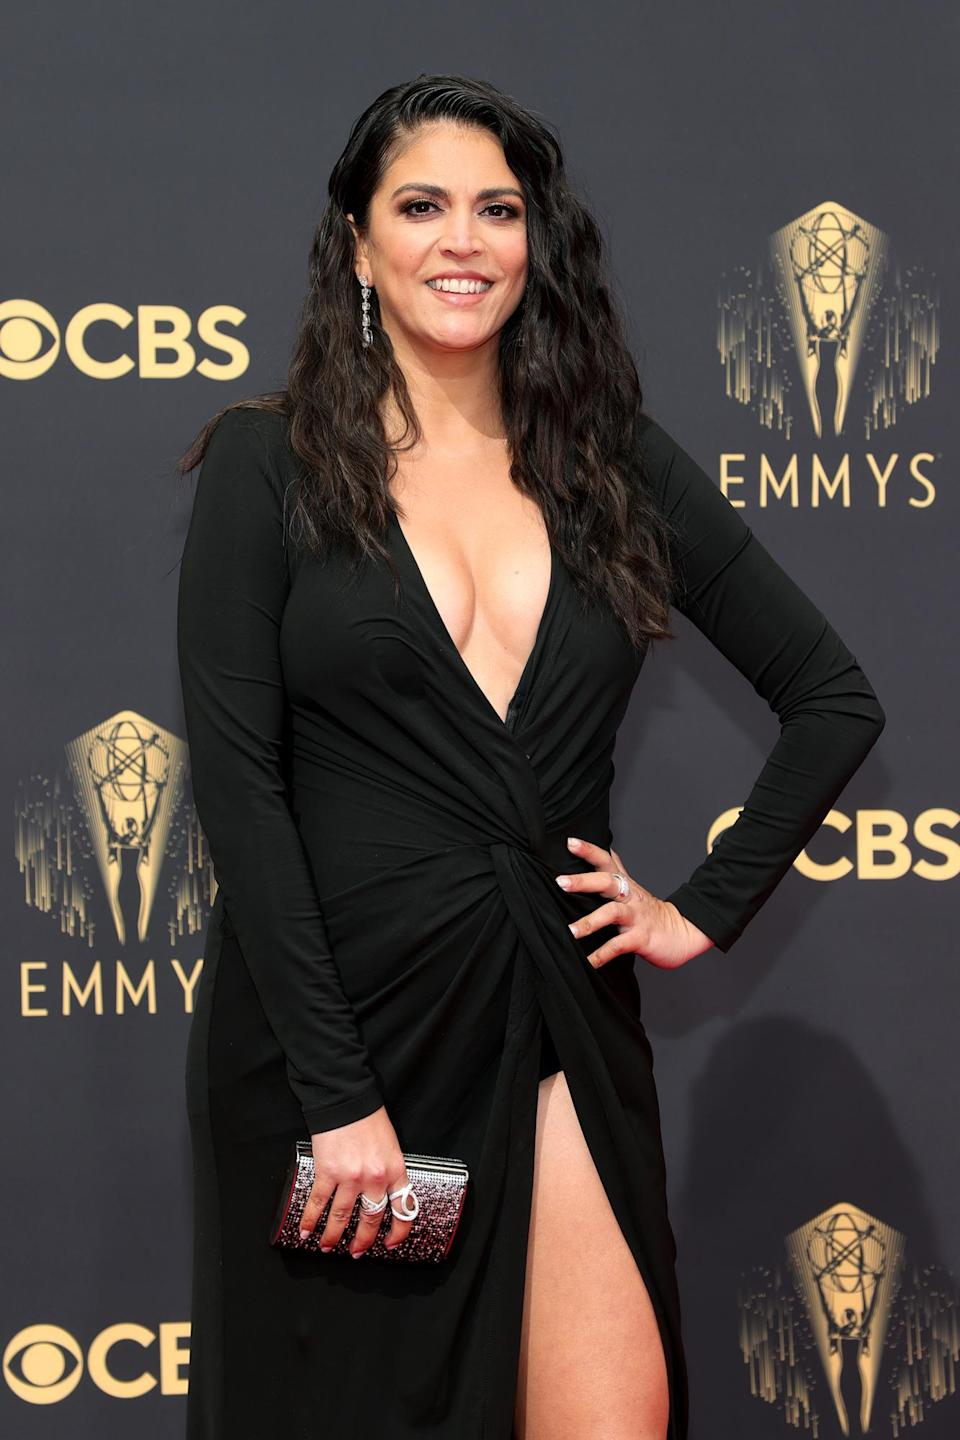 """<p><em>Saturday Night Live </em>star Cecily Strong may joke around for a living on the small screen, but she's certainly not playing with us at the 2021 Emmys. Makeup artist <a href=""""https://www.instagram.com/theamyclarke/"""" rel=""""nofollow noopener"""" target=""""_blank"""" data-ylk=""""slk:Amy Clarke"""" class=""""link rapid-noclick-resp"""">Amy Clarke</a> gave the star soft glam accompanied by fluttery lashes, while hairstylist <a href=""""https://www.instagram.com/paulnortonhair/"""" rel=""""nofollow noopener"""" target=""""_blank"""" data-ylk=""""slk:Paul Norton"""" class=""""link rapid-noclick-resp"""">Paul Norton</a> created sultry waves with a deep side part. </p>"""